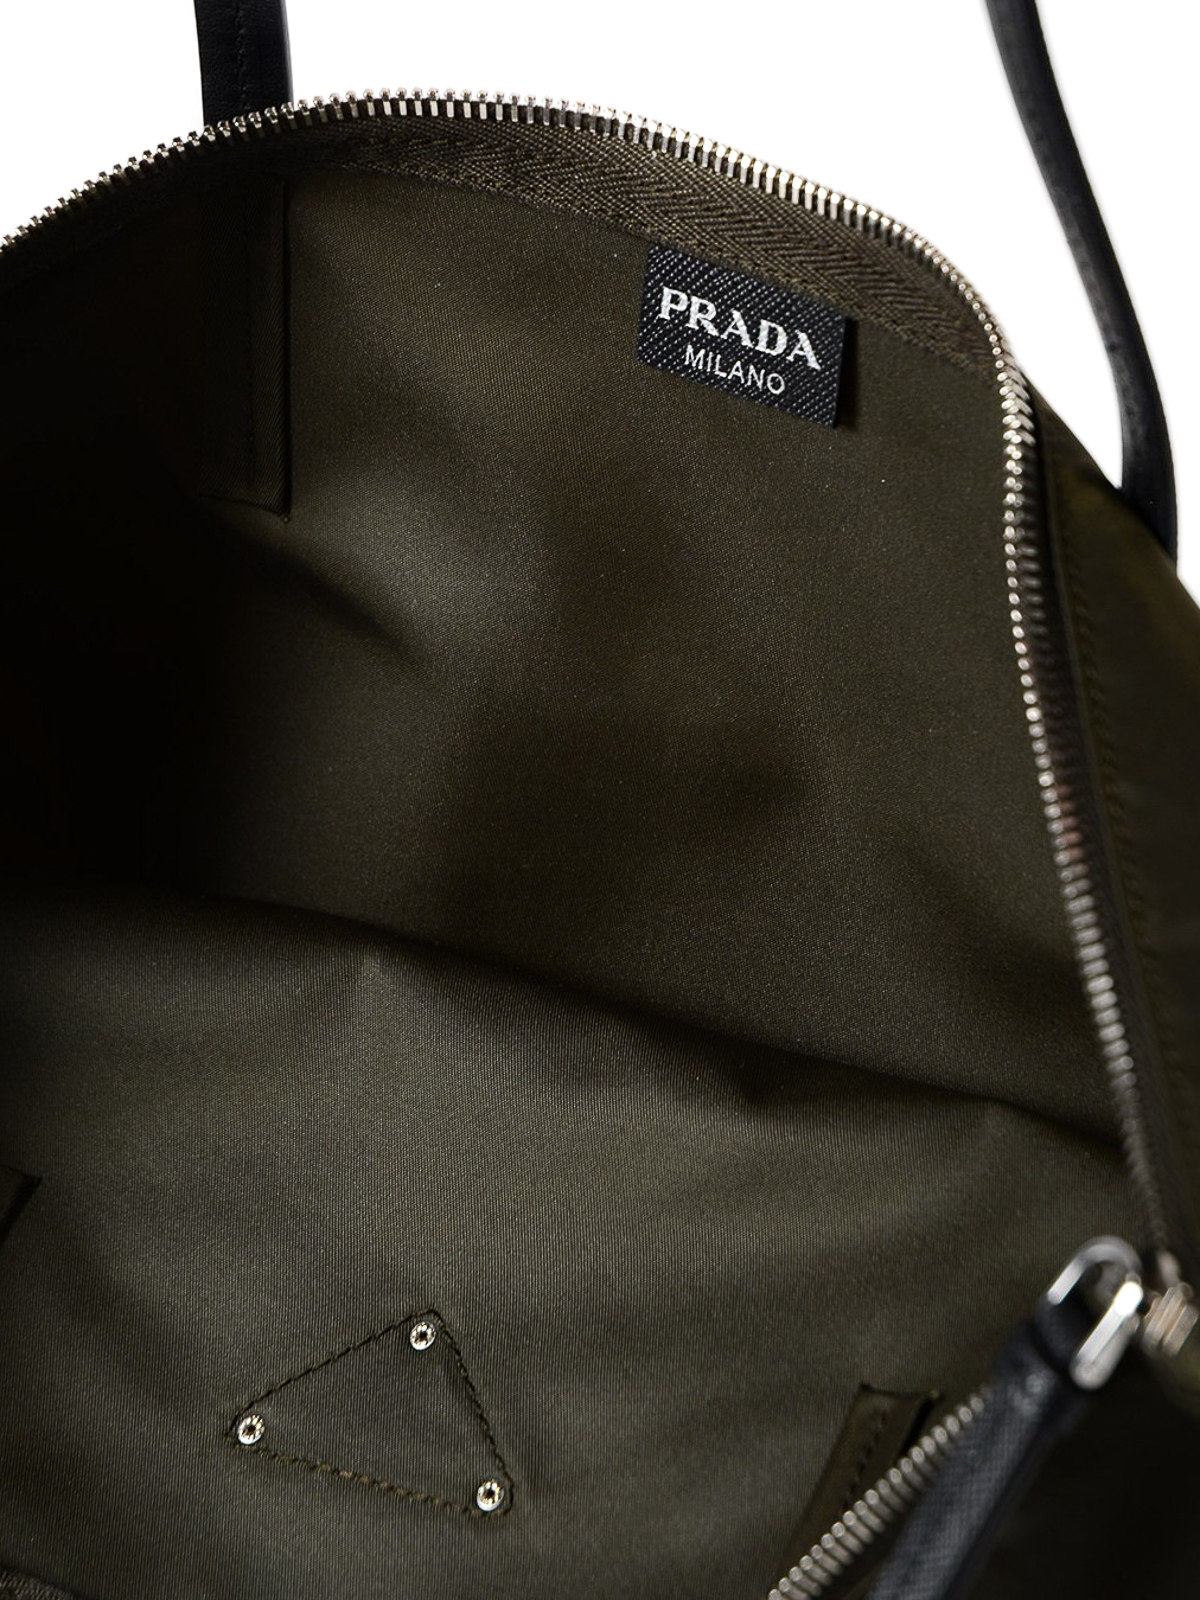 bottom of prada bag